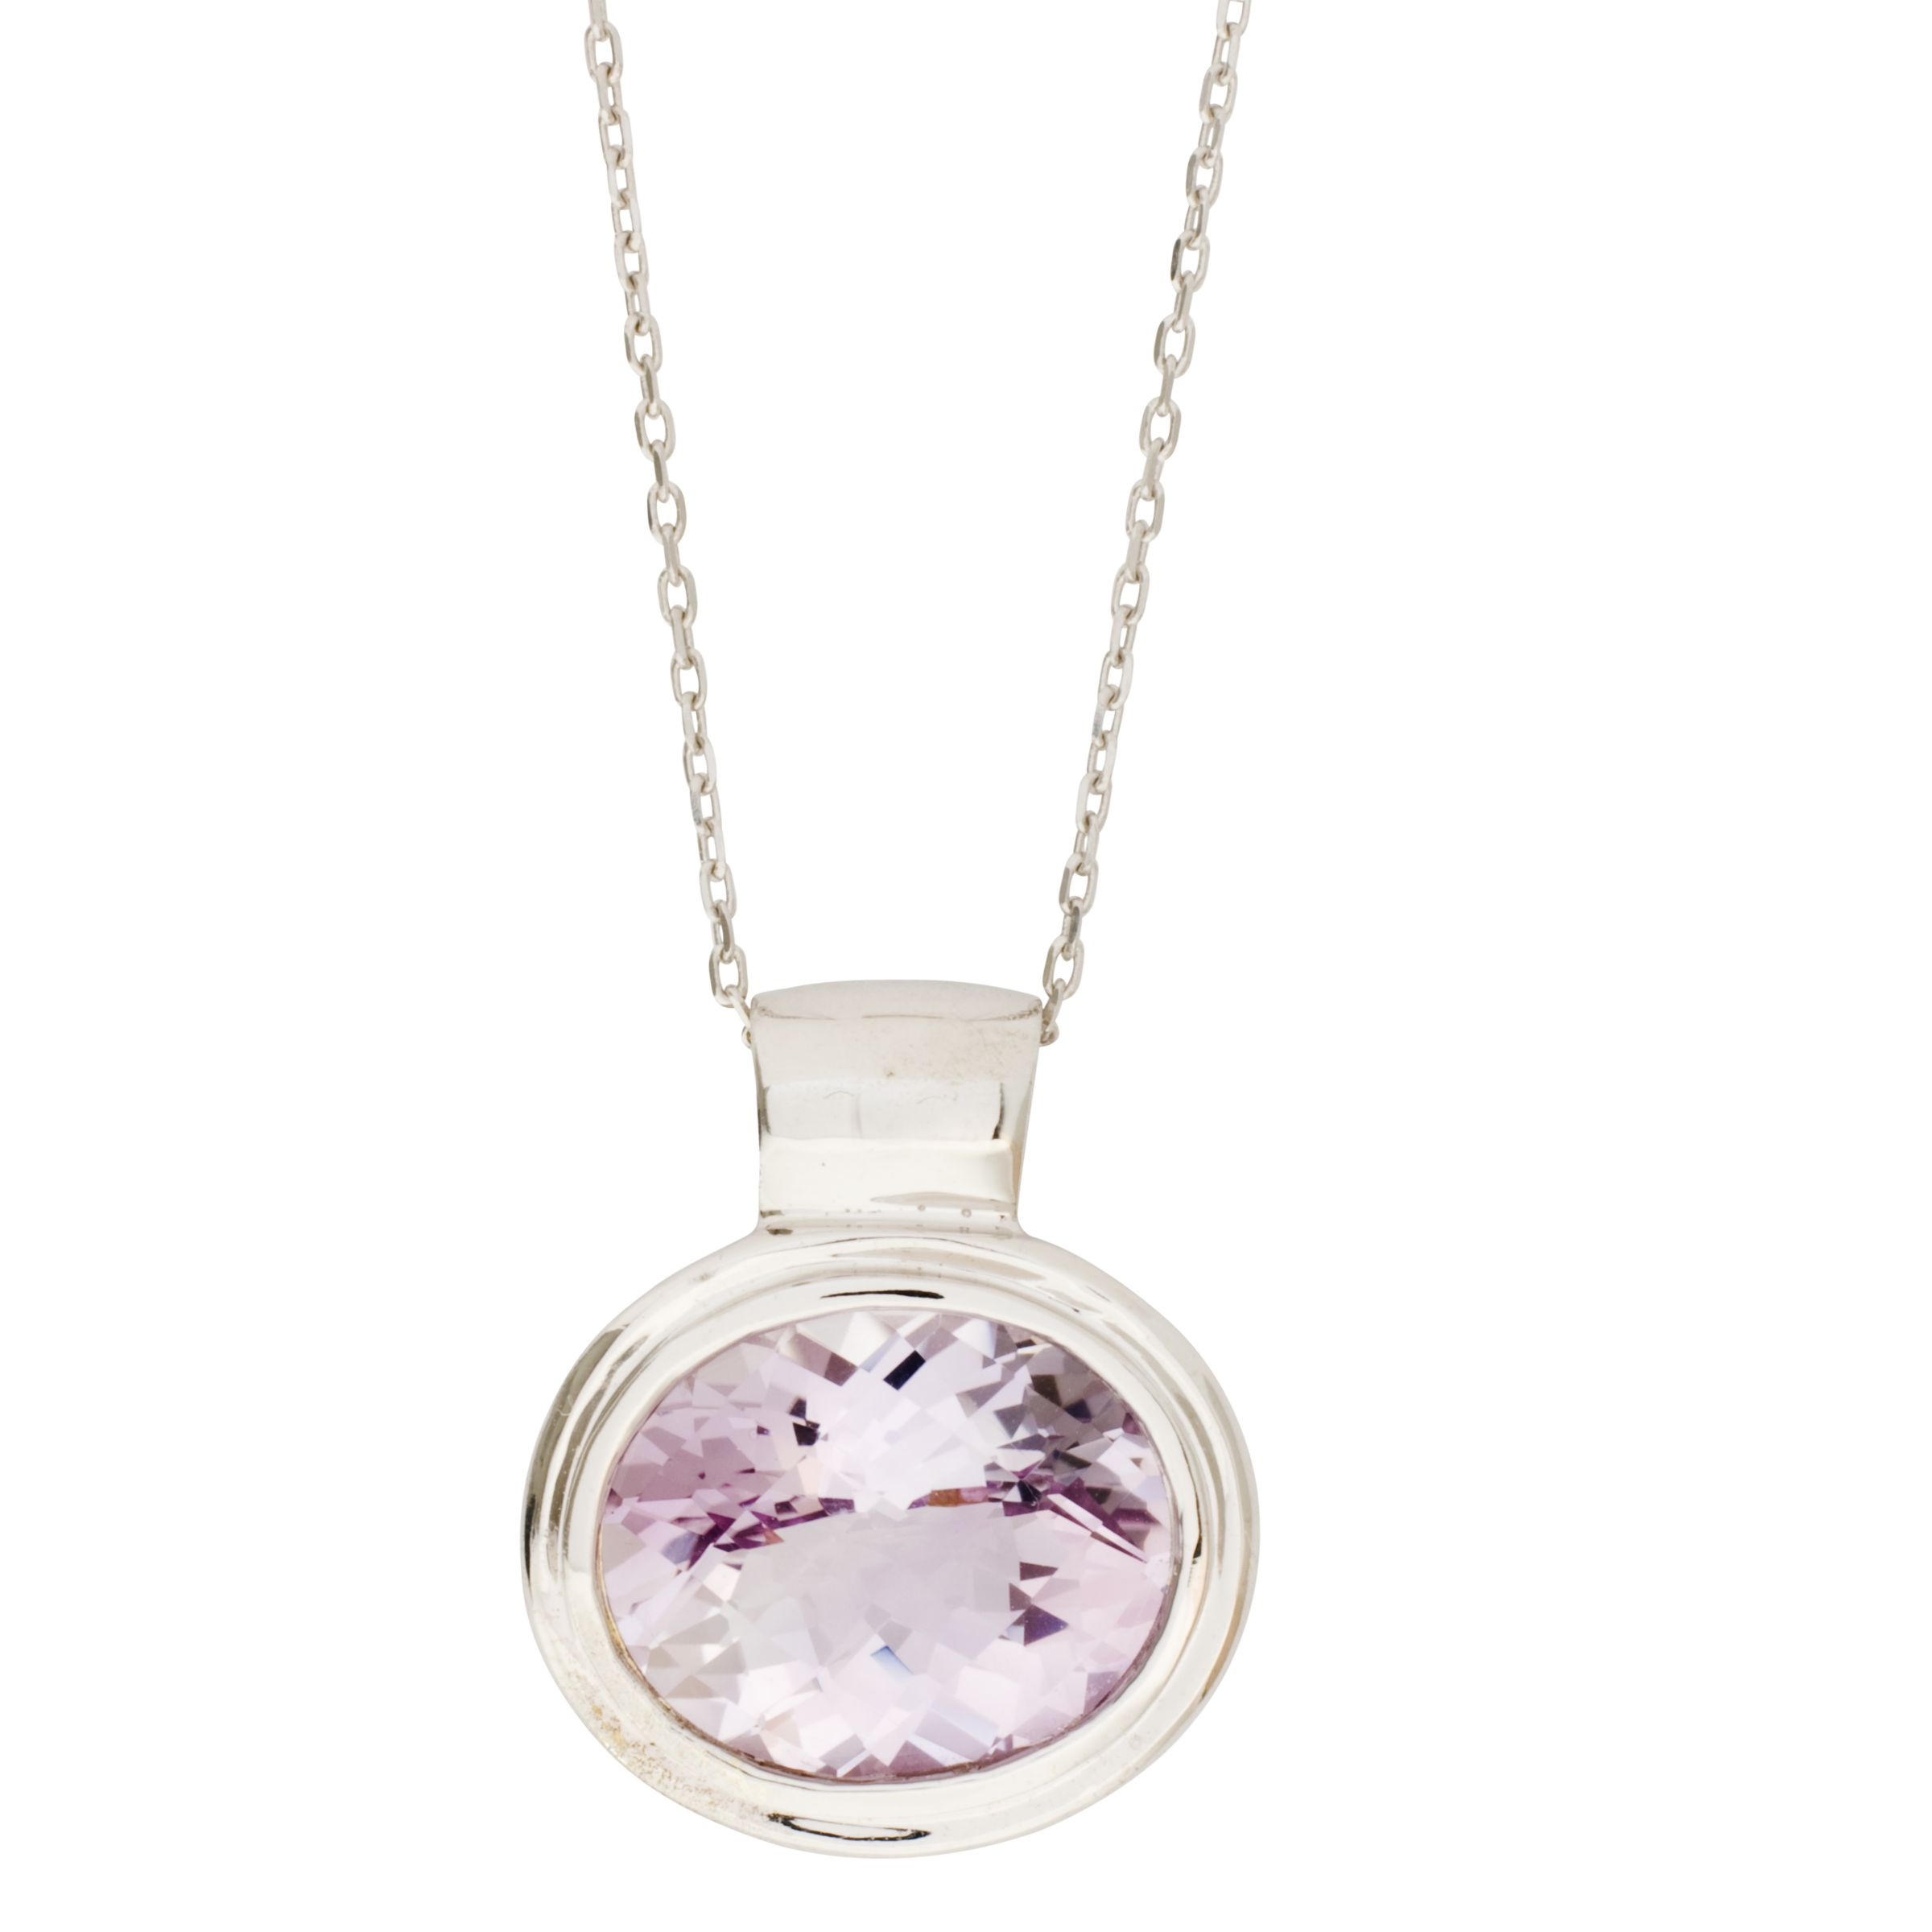 London Road White Gold Oval Amethyst Pendant Necklace